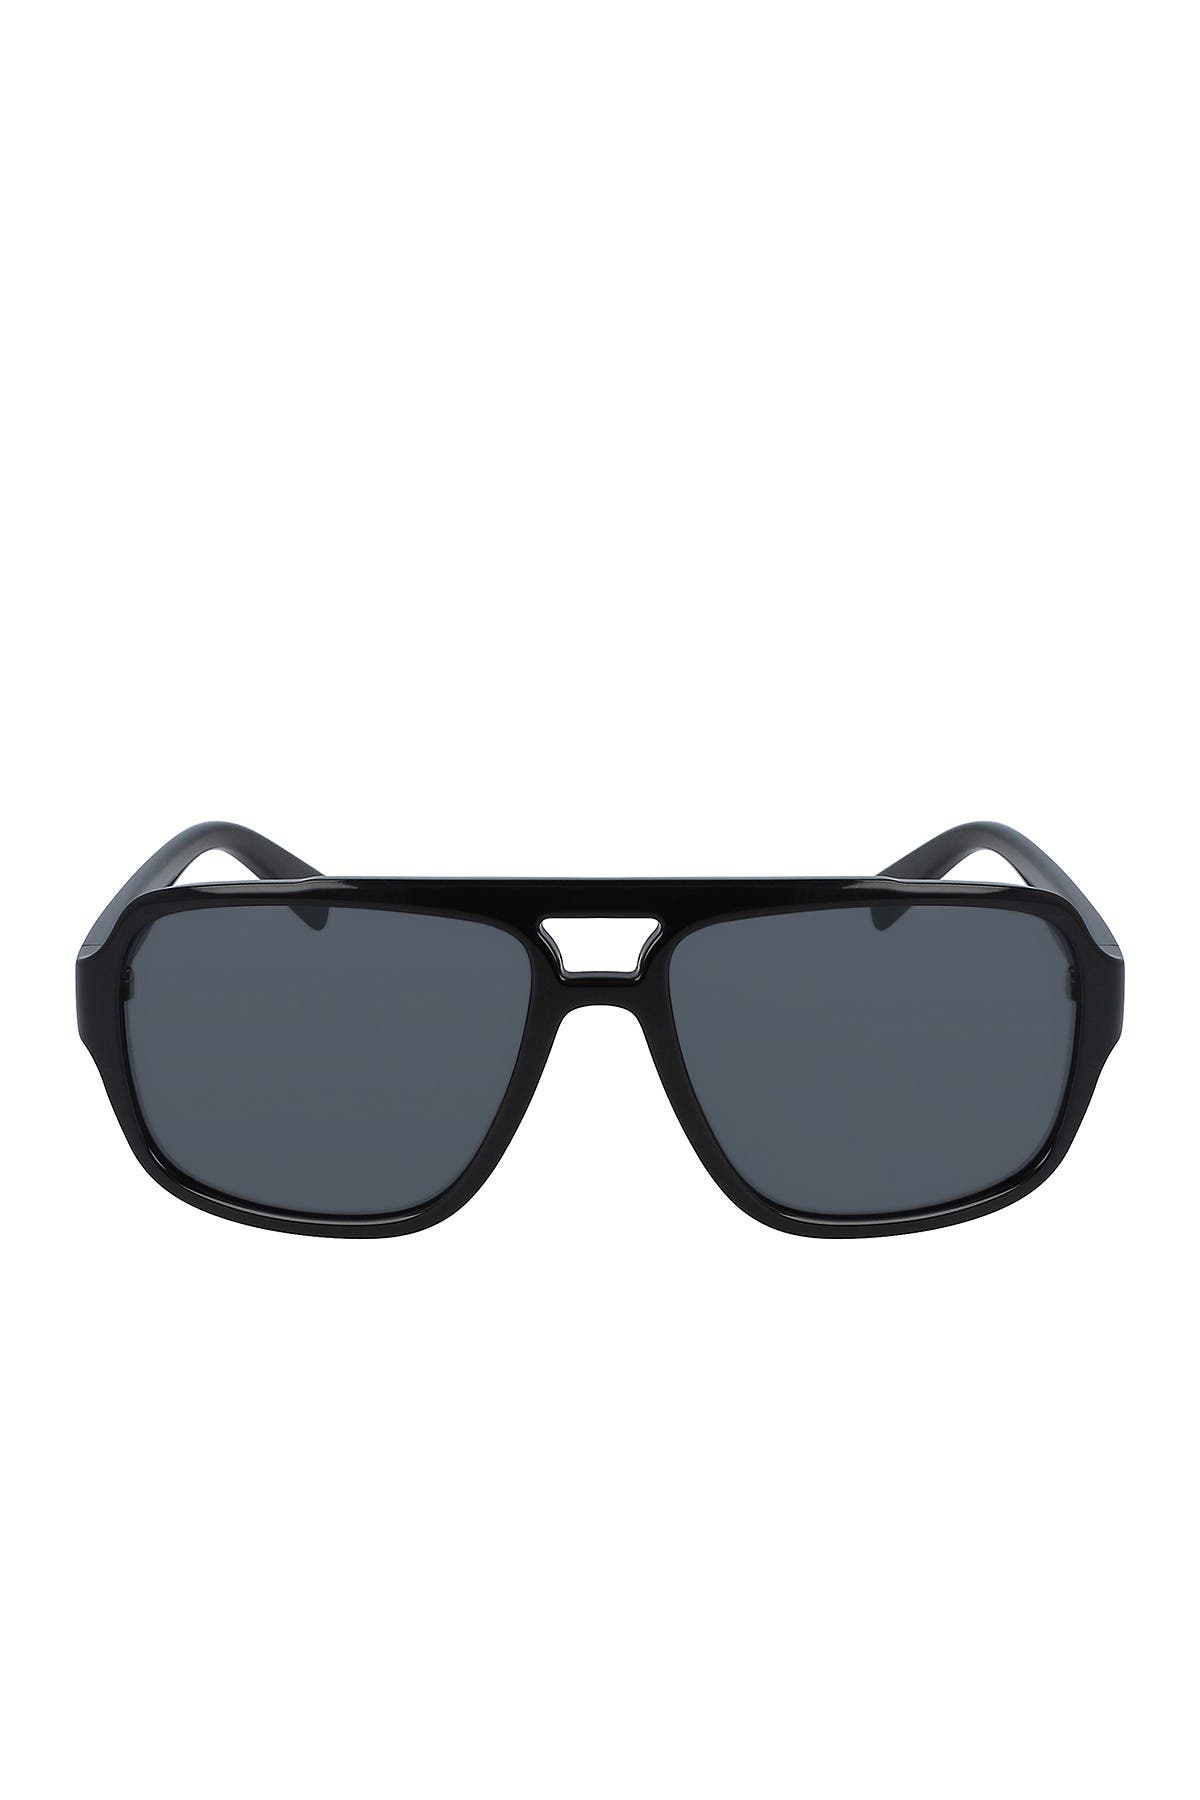 Image of Cole Haan 58mm Injected Navigator Sunglasses